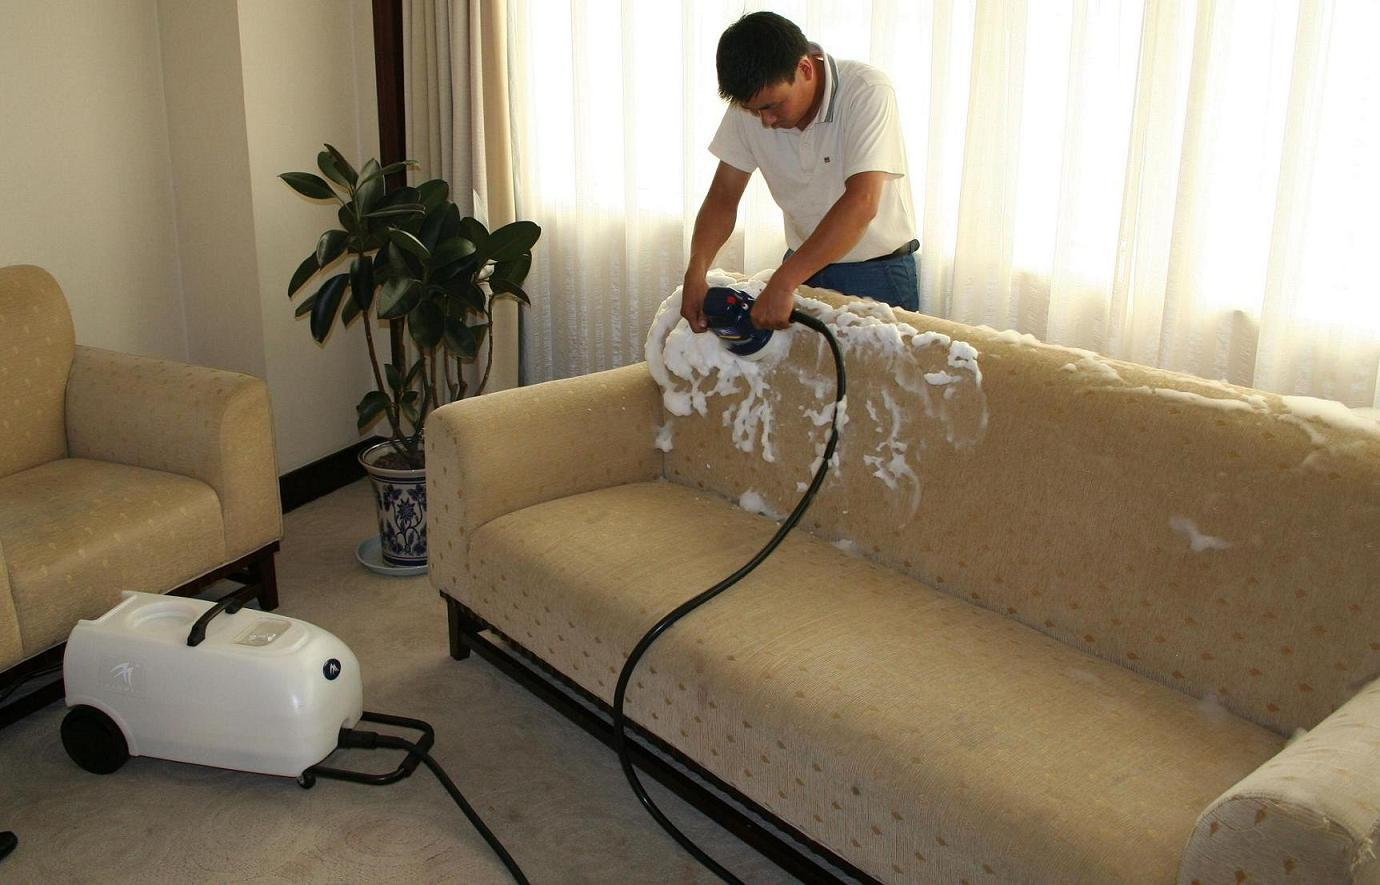 sofa cleaner the leather company outlet lewisville upholstery cleaning burbank rug